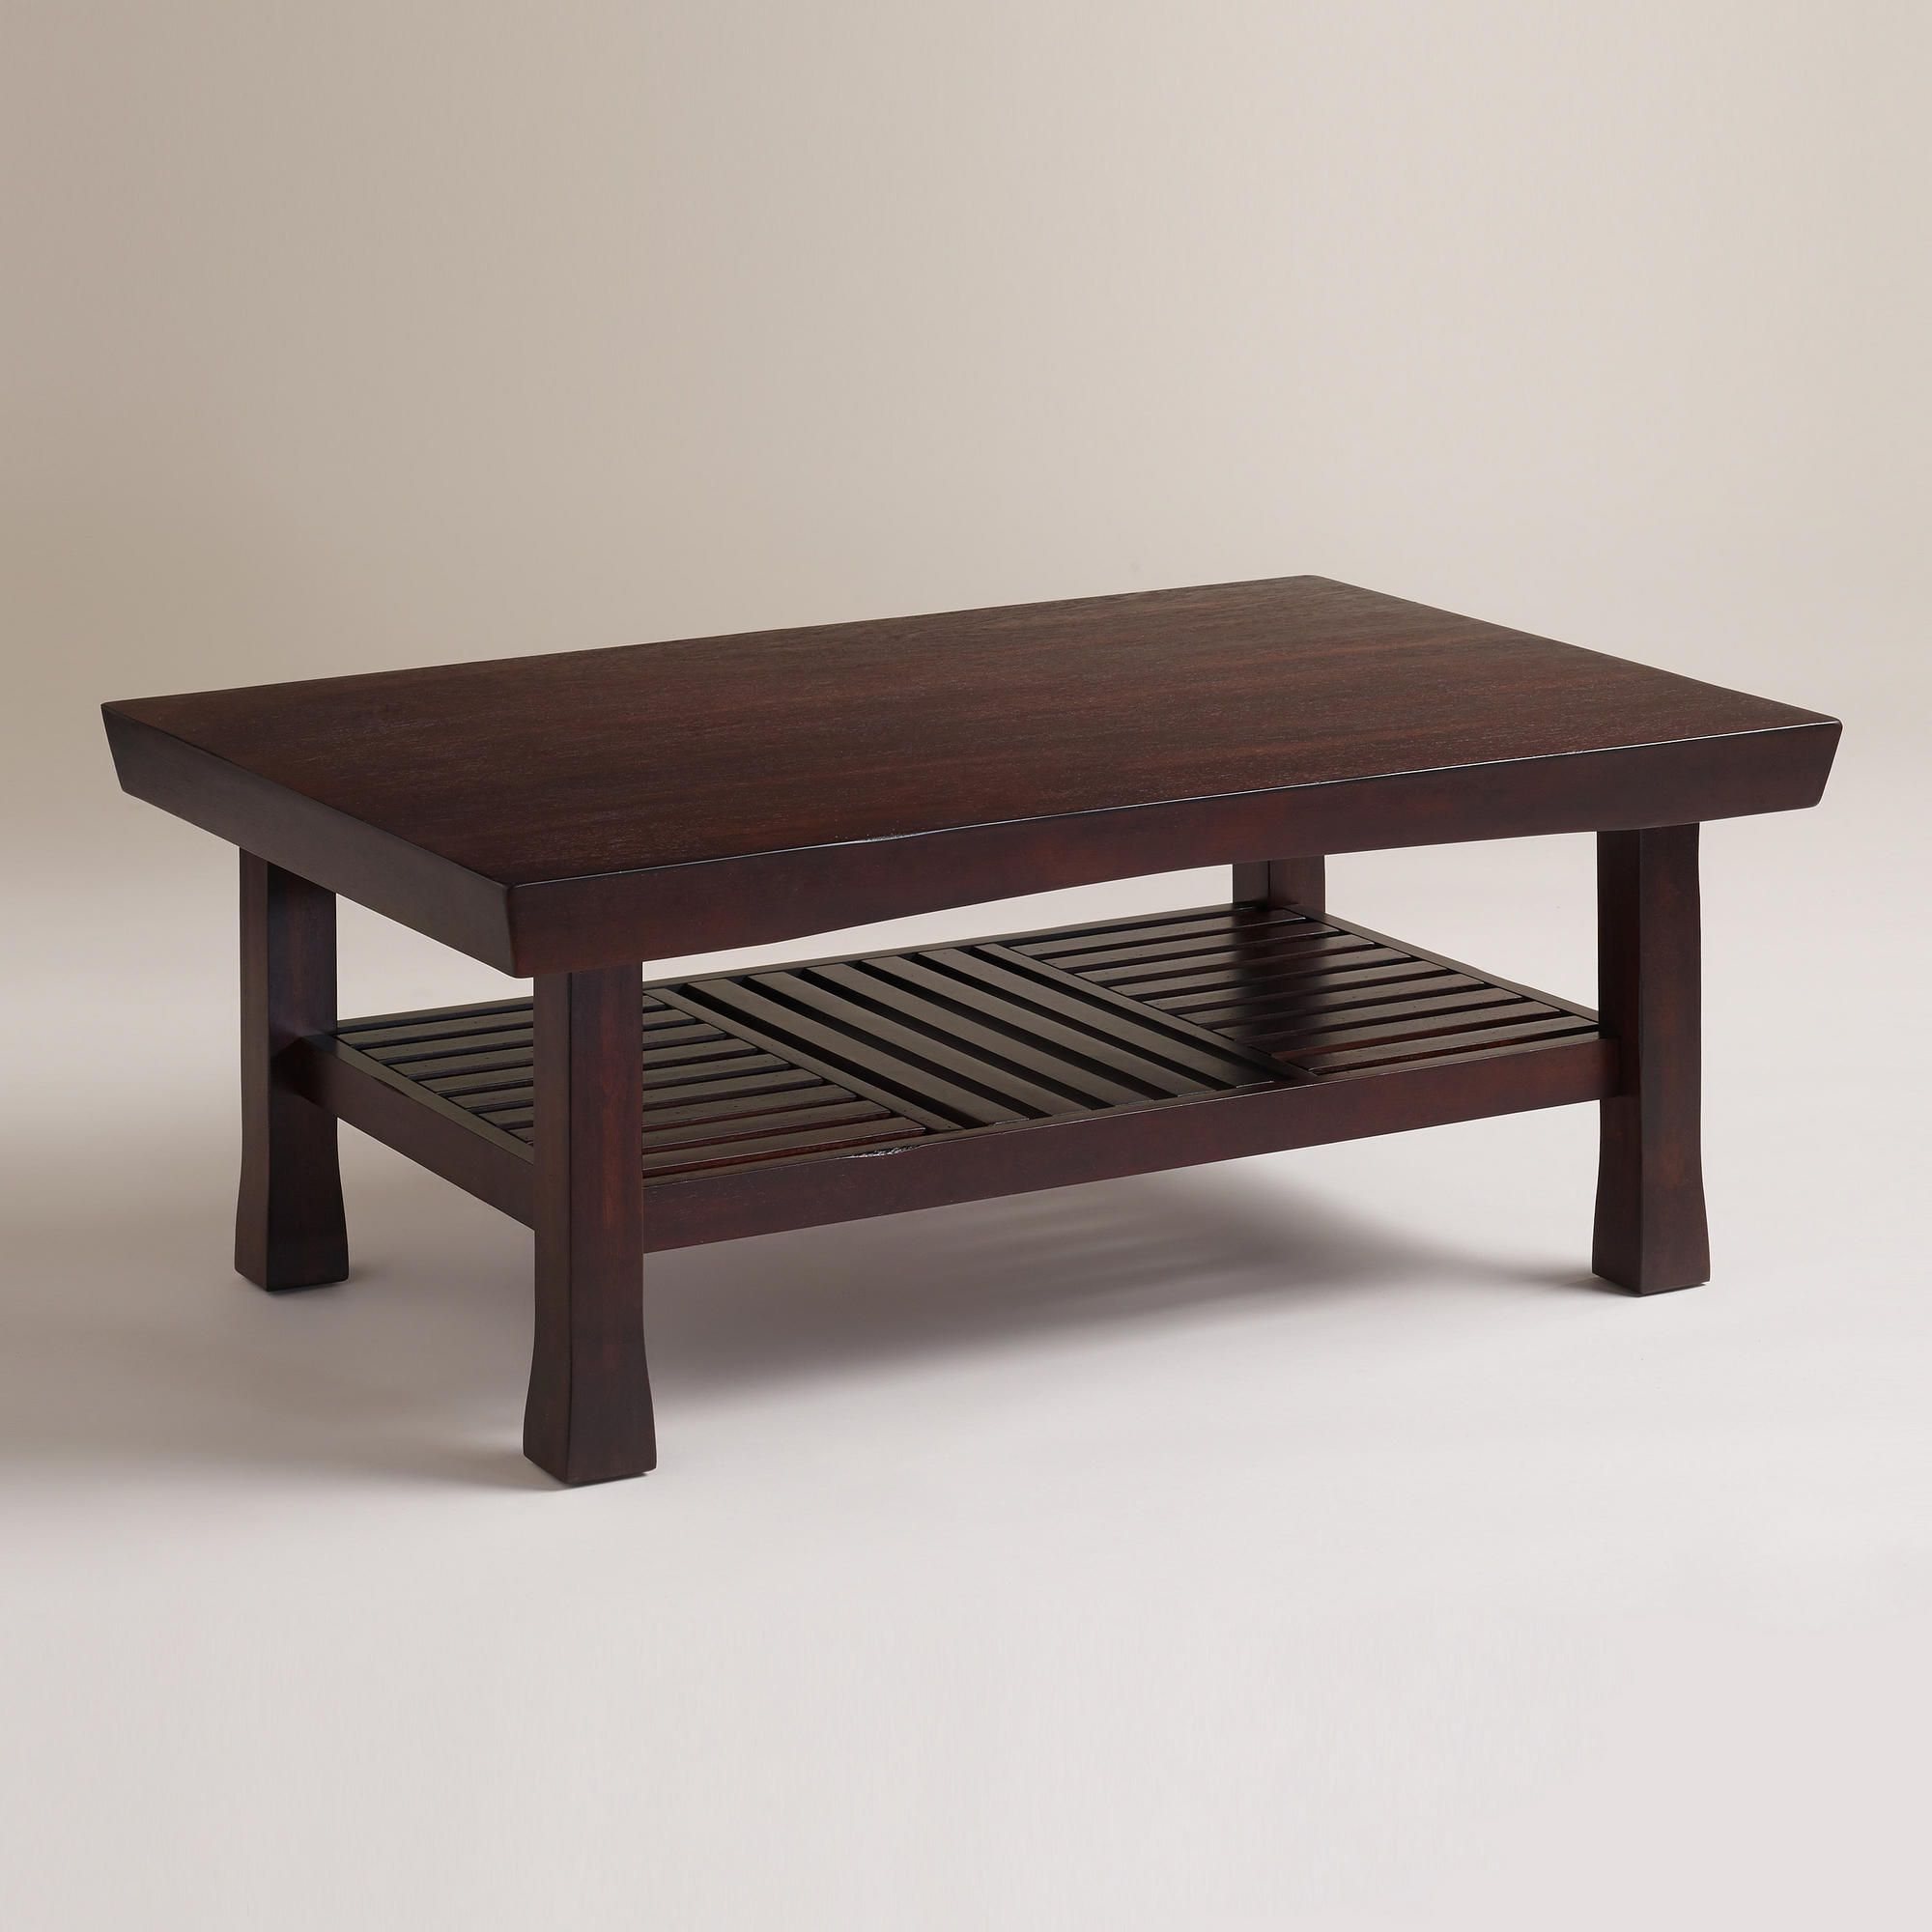 Incroyable My One Day Coffee Table. My Favorite. Hako Coffee Table | World Market